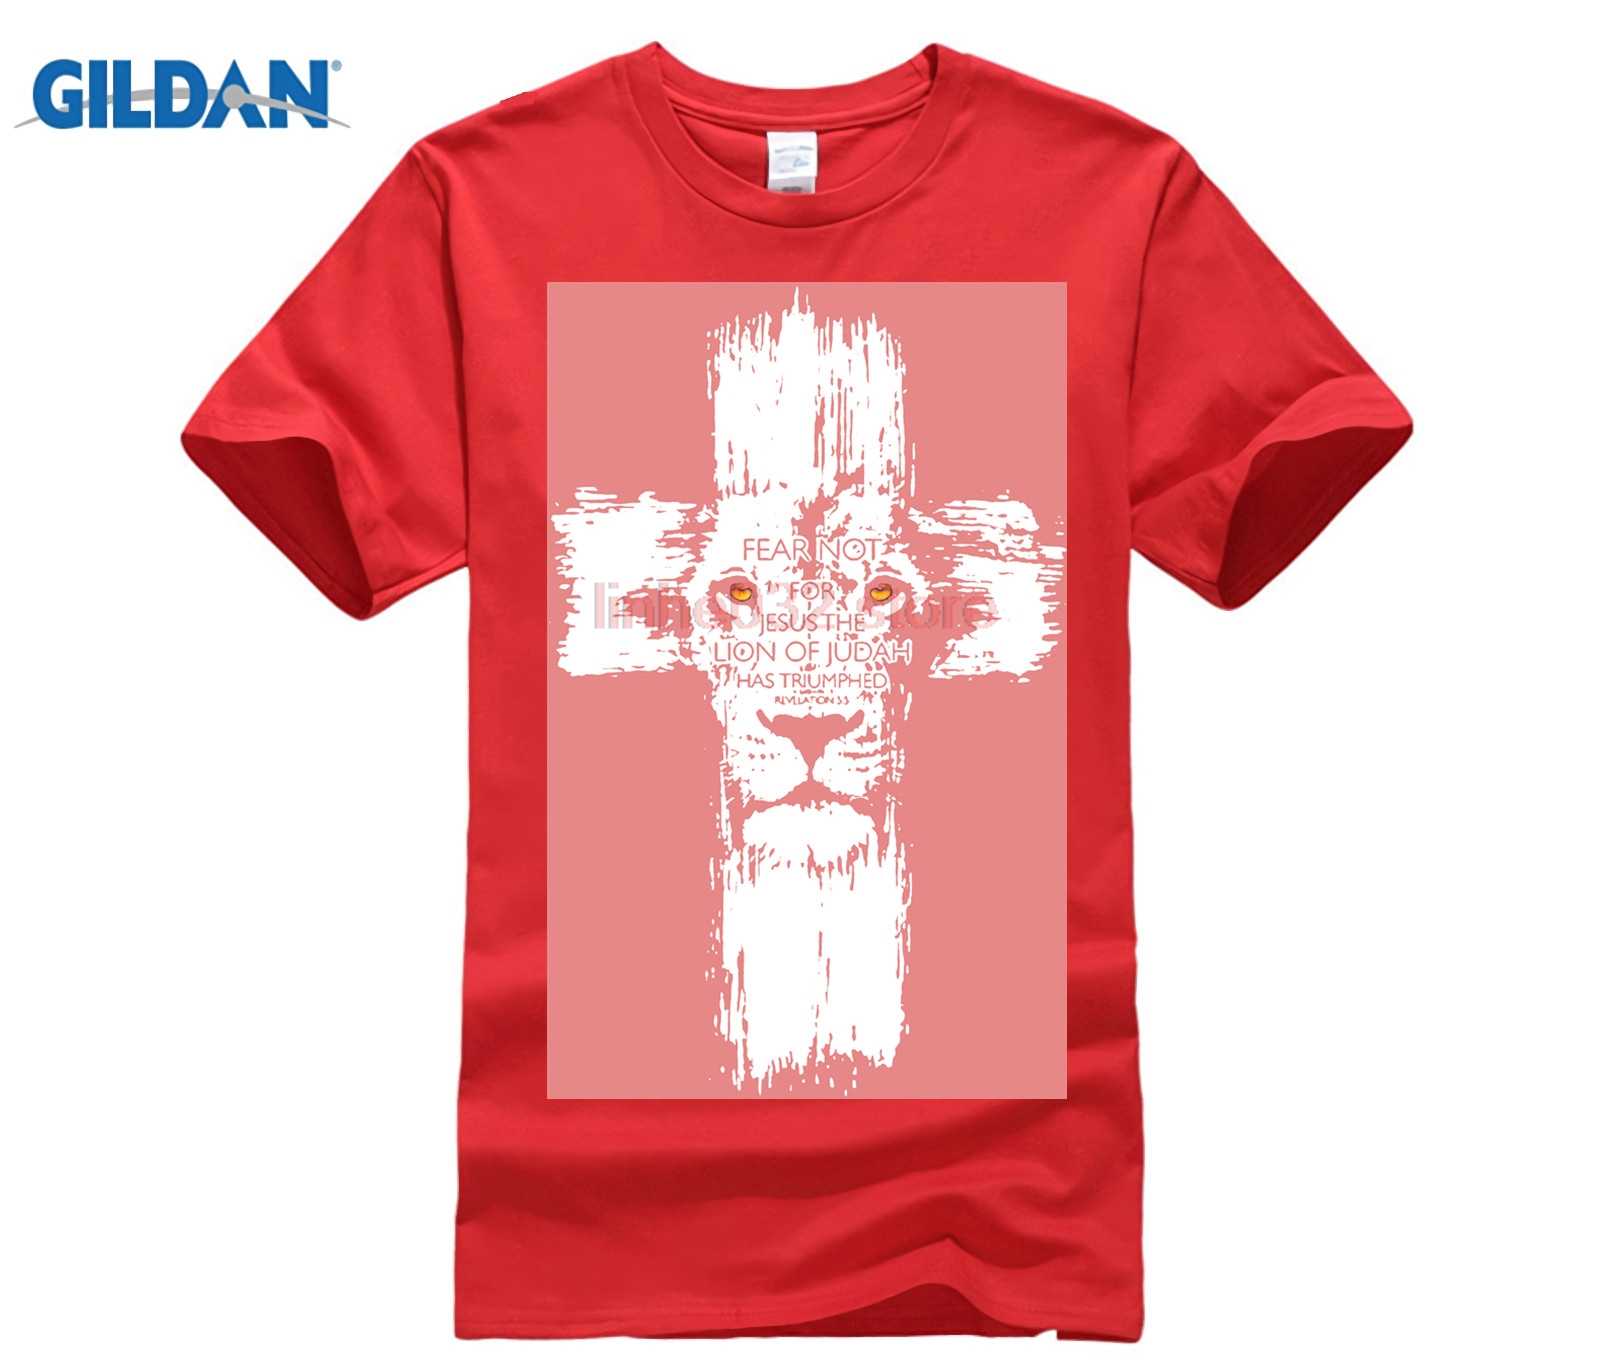 c0ccb89a Buy judah jesus and get free shipping on AliExpress.com